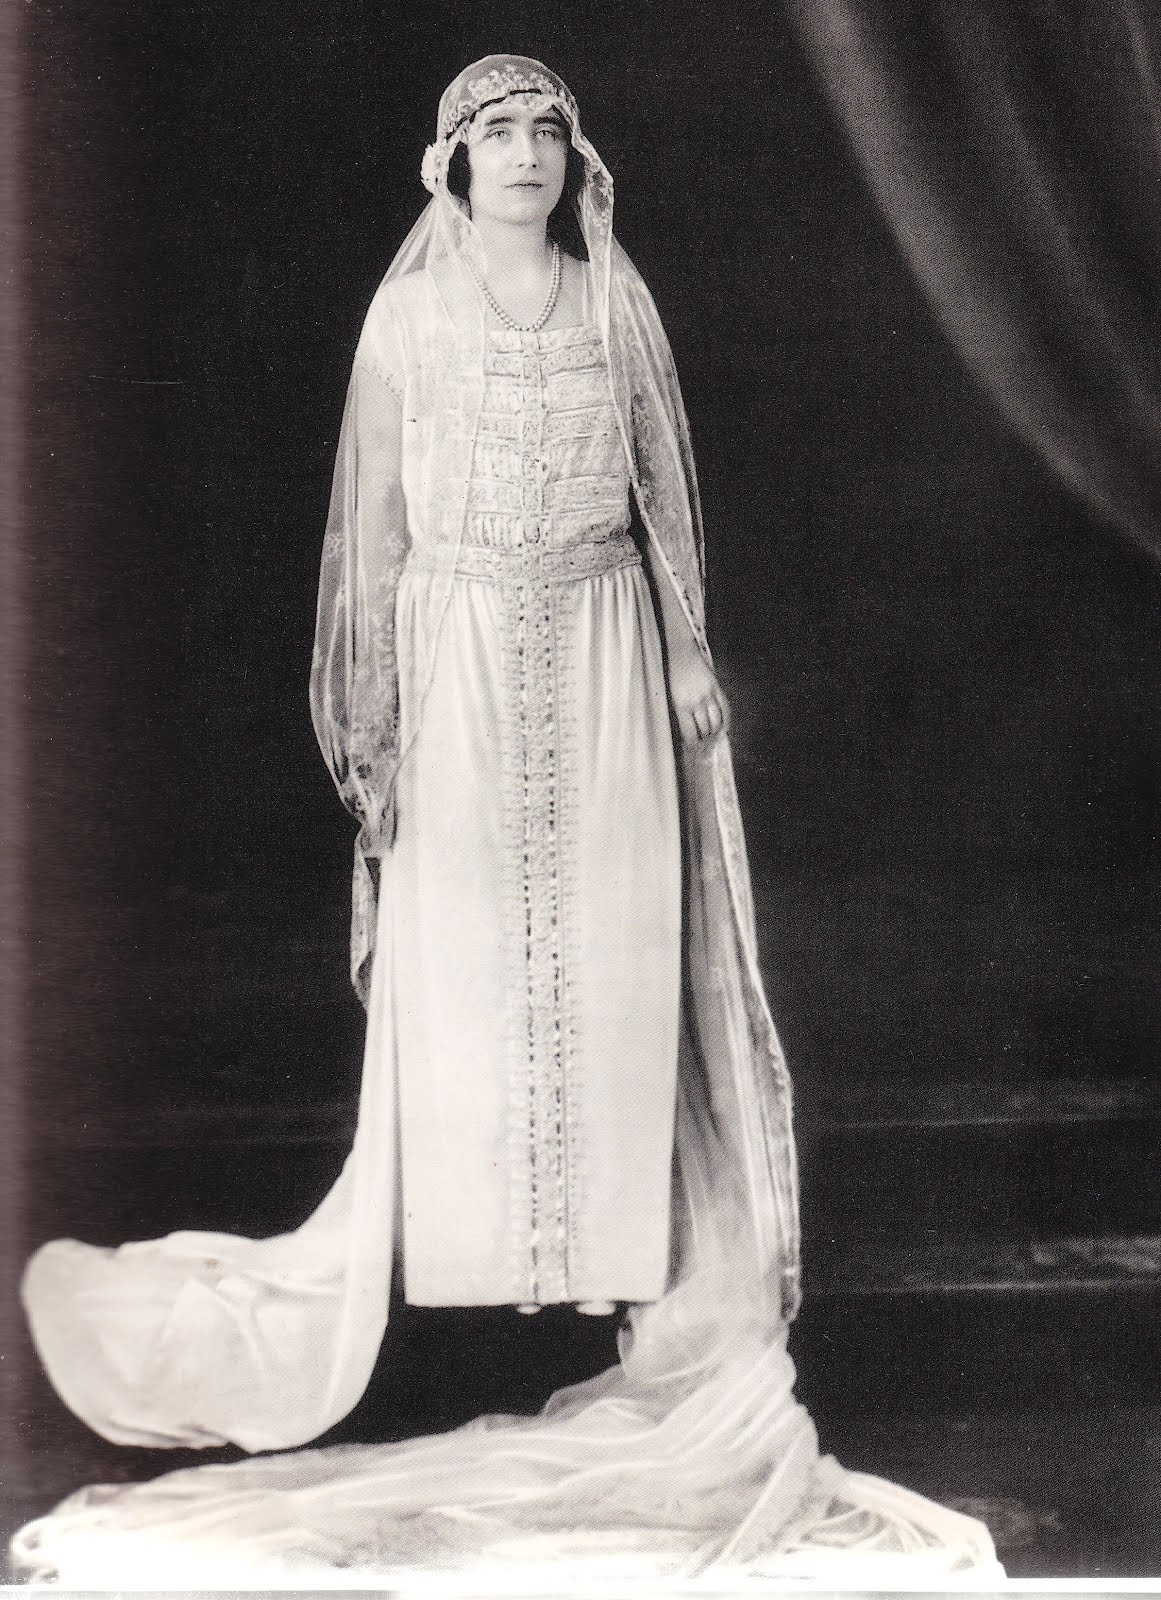 The royal bridal gown of queen elizabeth nee bowes lyon for Wedding dresses for mothers